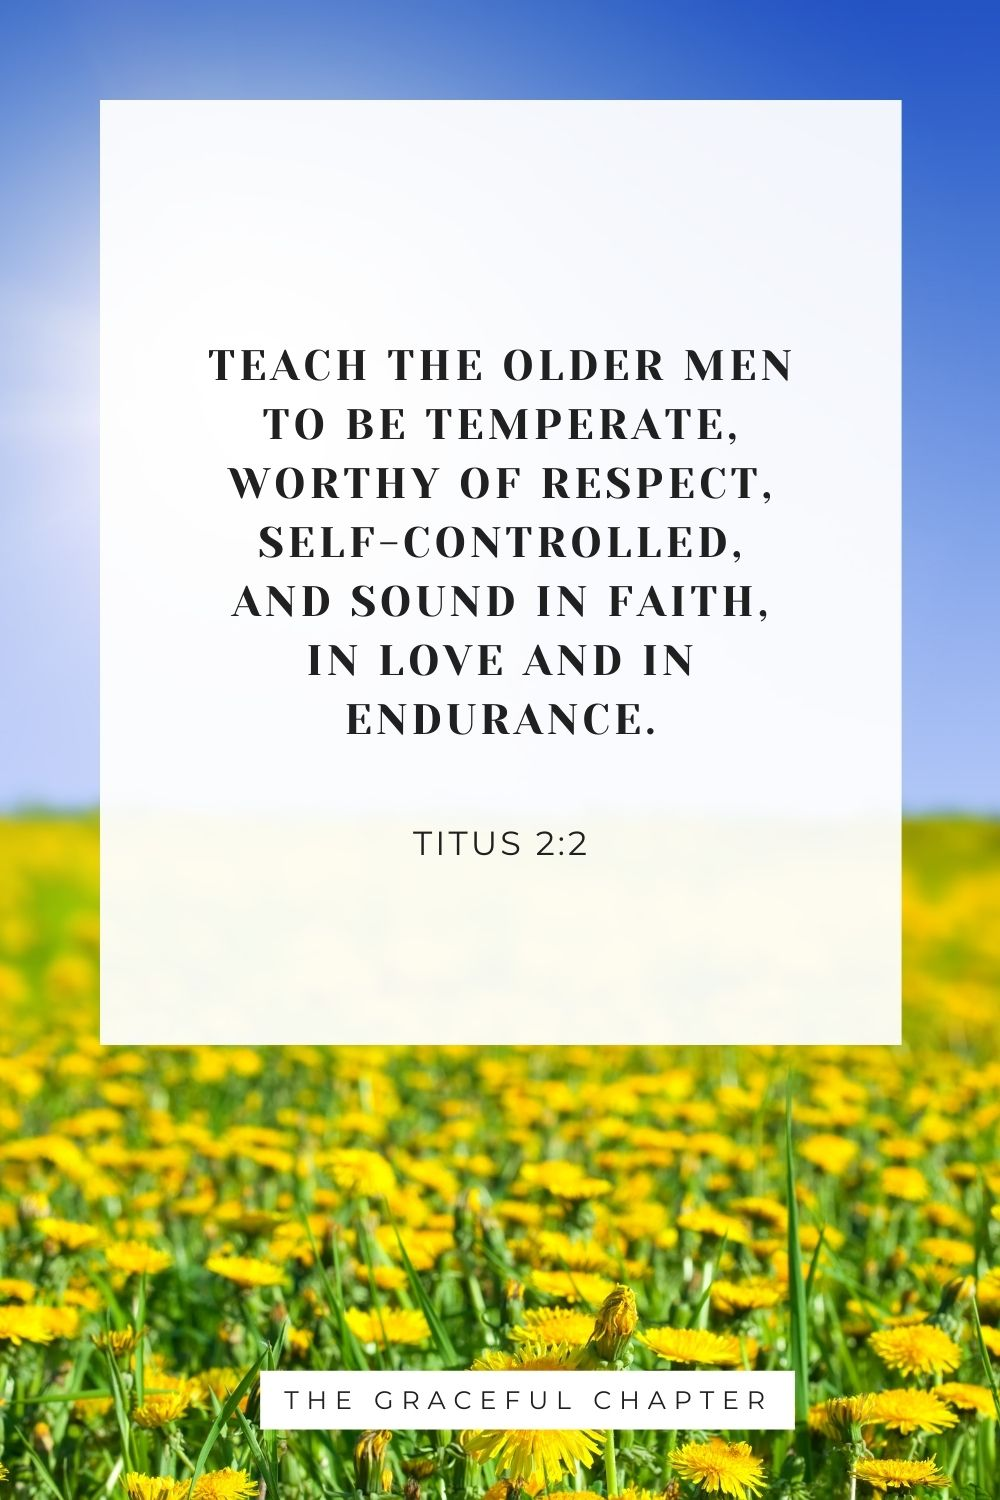 Teach the older men to be temperate, worthy of respect, self-controlled, and sound in faith, in love and in endurance. Titus 2:2